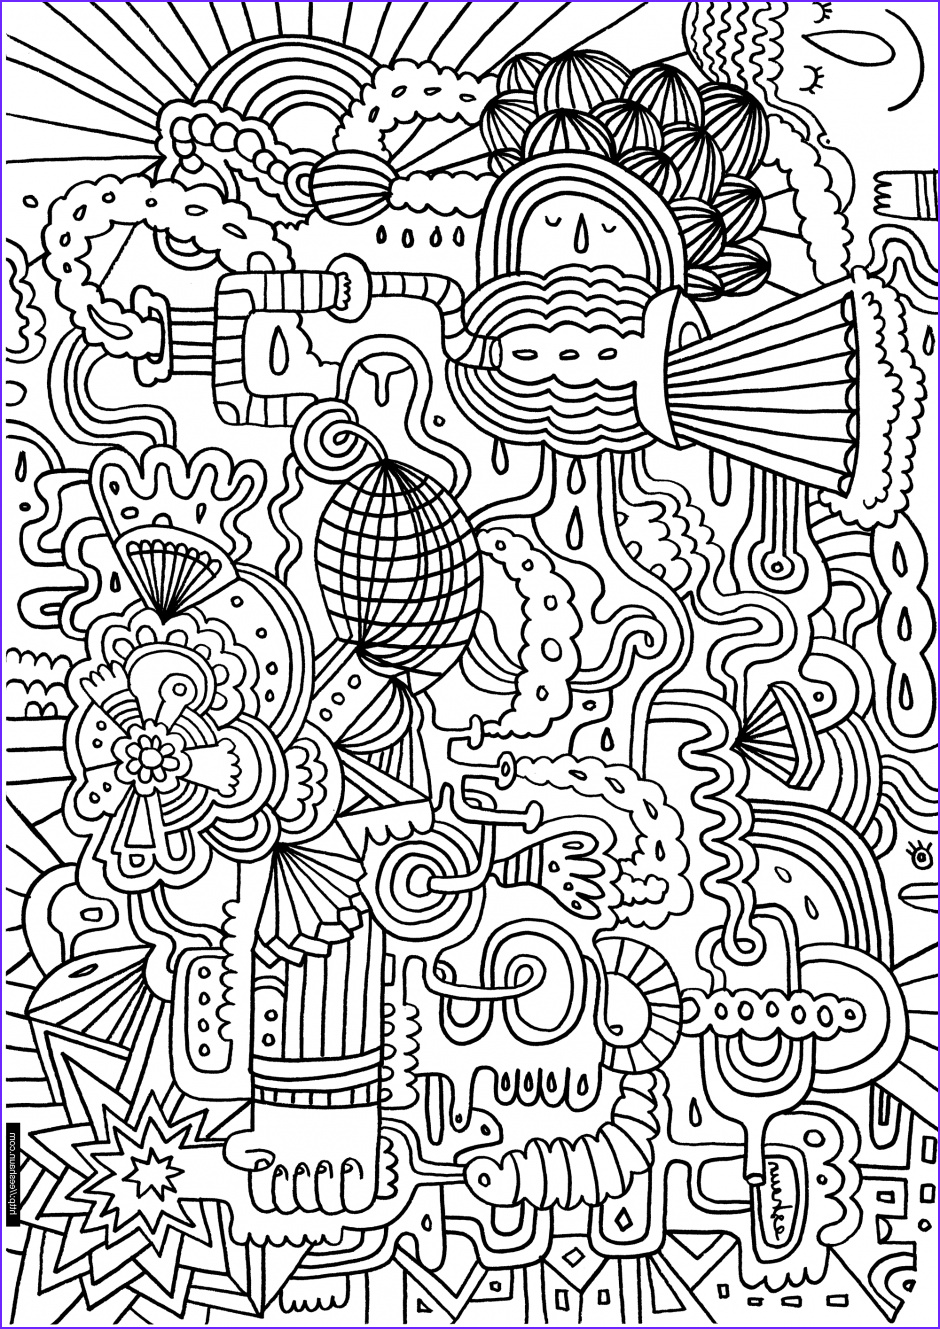 Difficult Coloring Pages Luxury Photography Coloring Pages Of Flowers for Teenagers Difficult